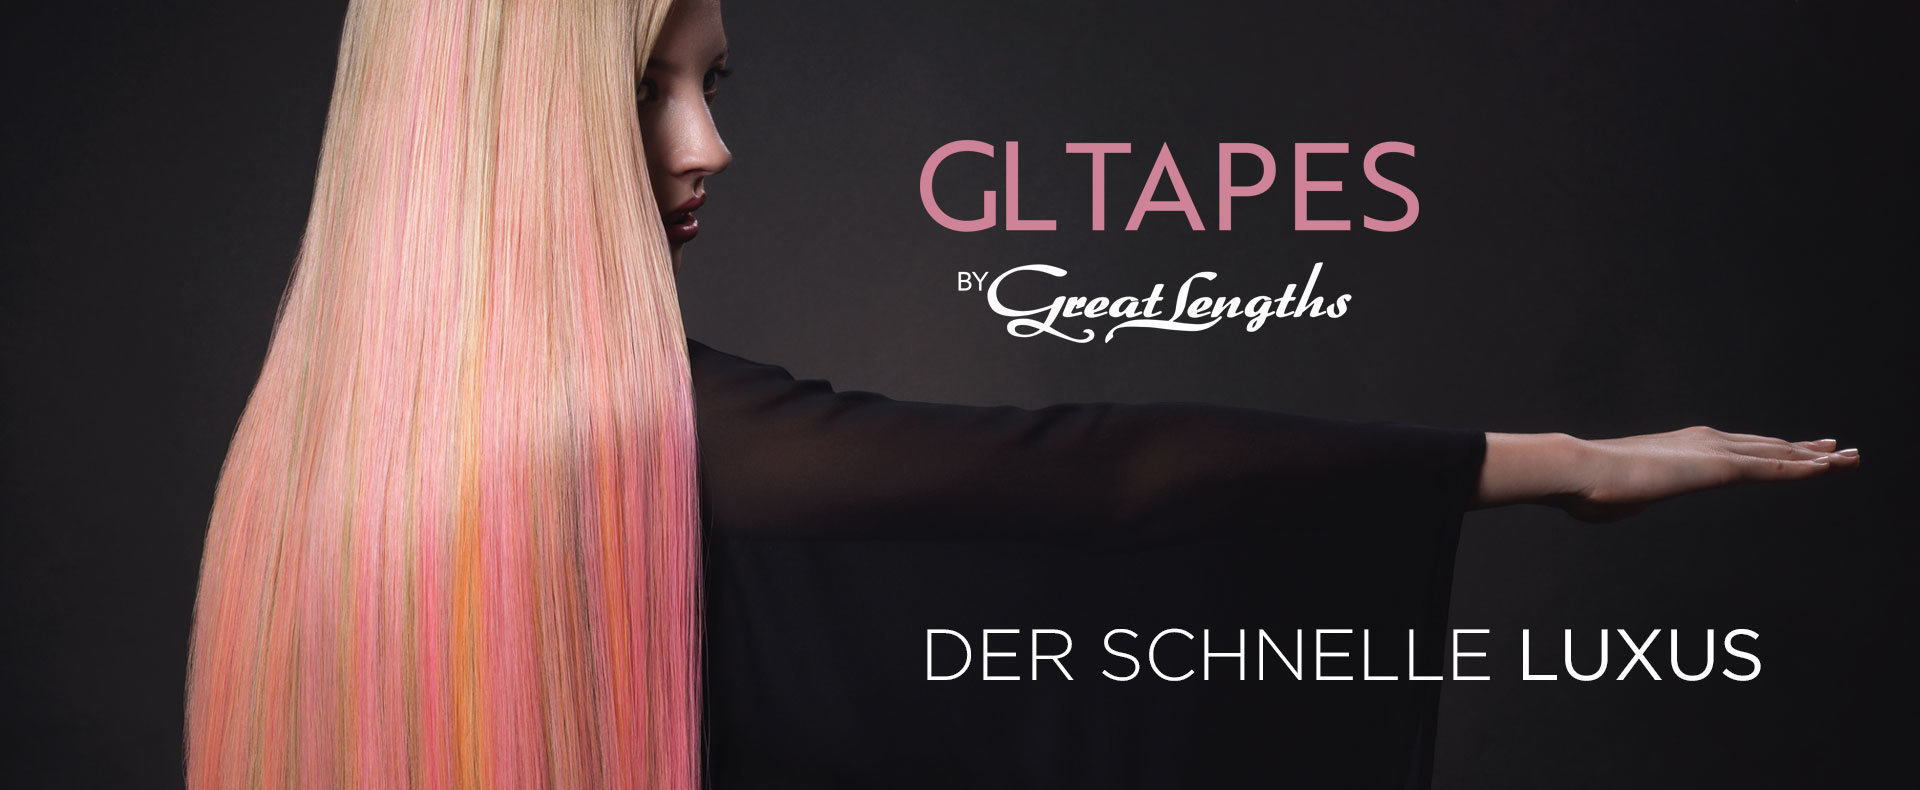 GL TAPES - DER SCHNELLE LUXUS (© Great Lengths)